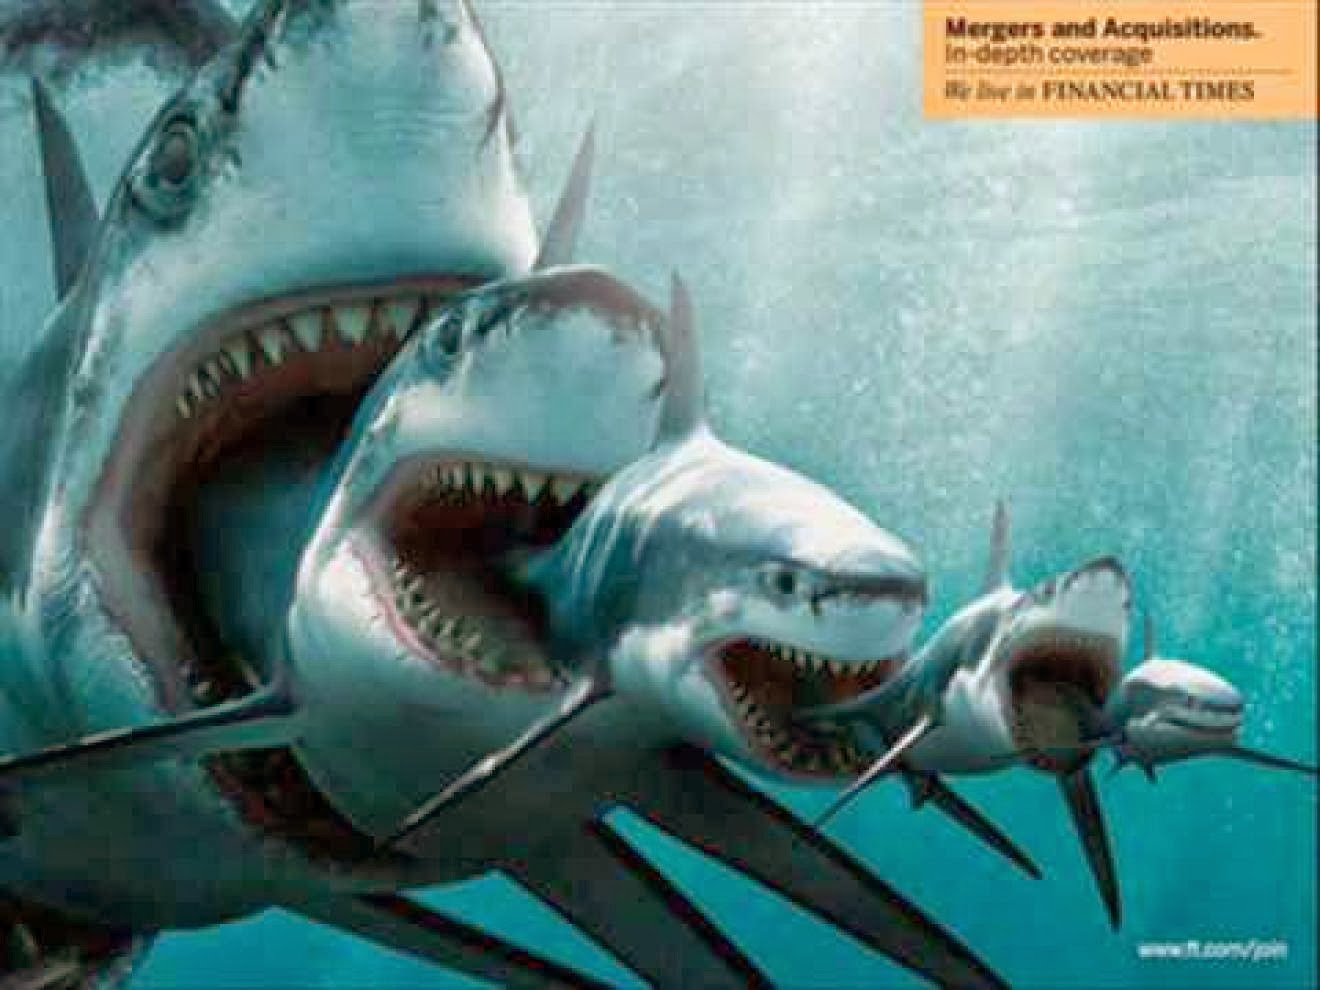 Shark wall decals high definition images